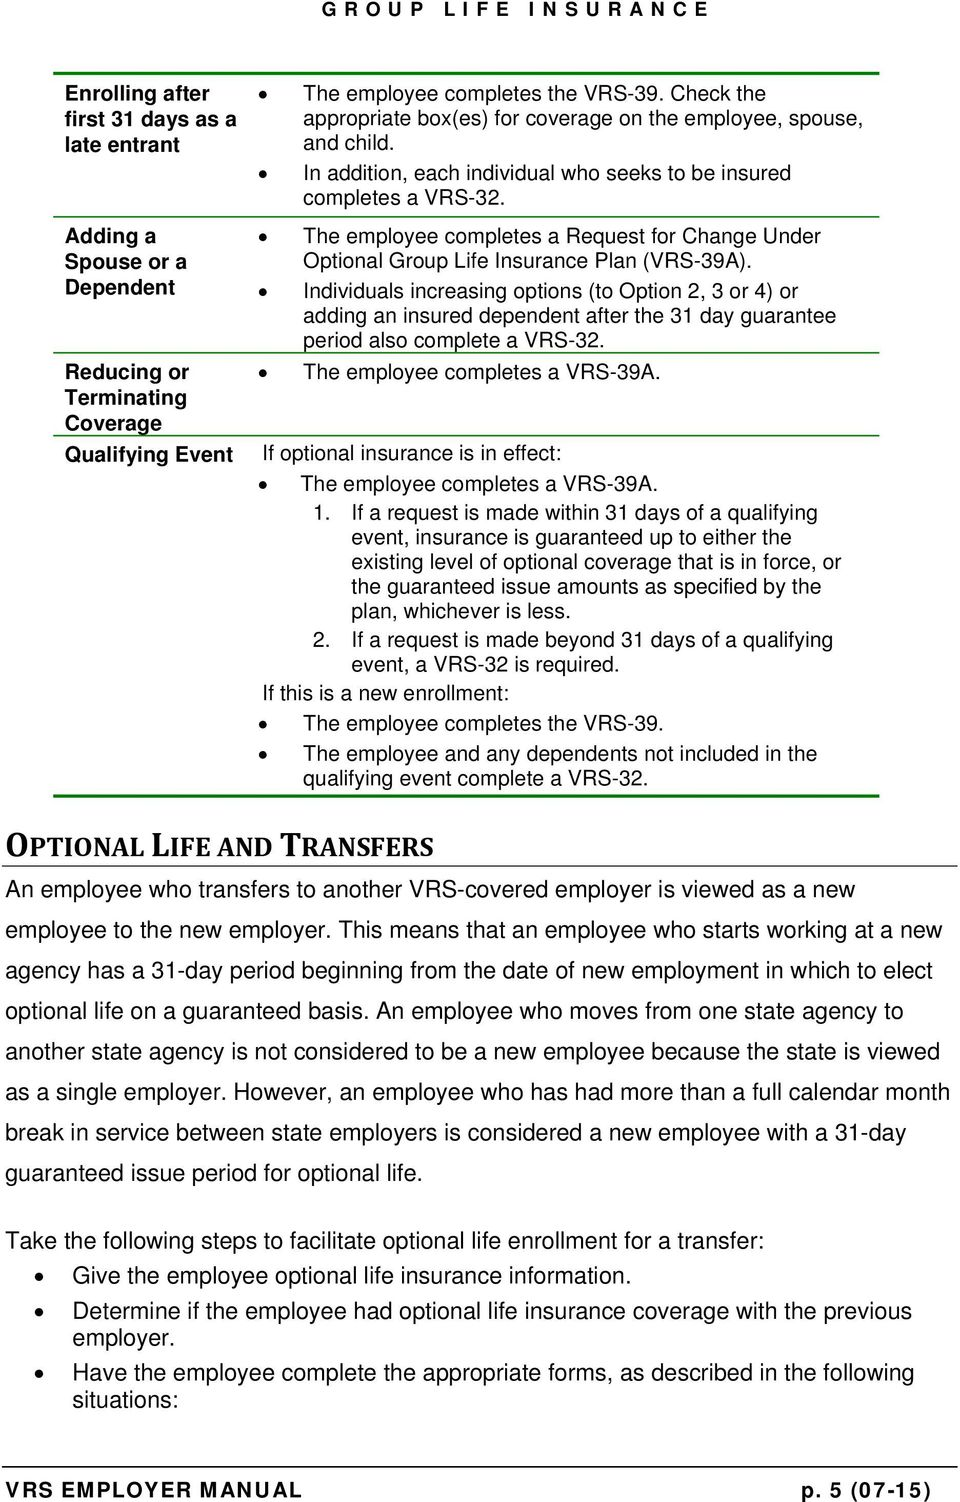 The employee completes a Request for Change Under Optional Group Life Insurance Plan (VRS-39A).